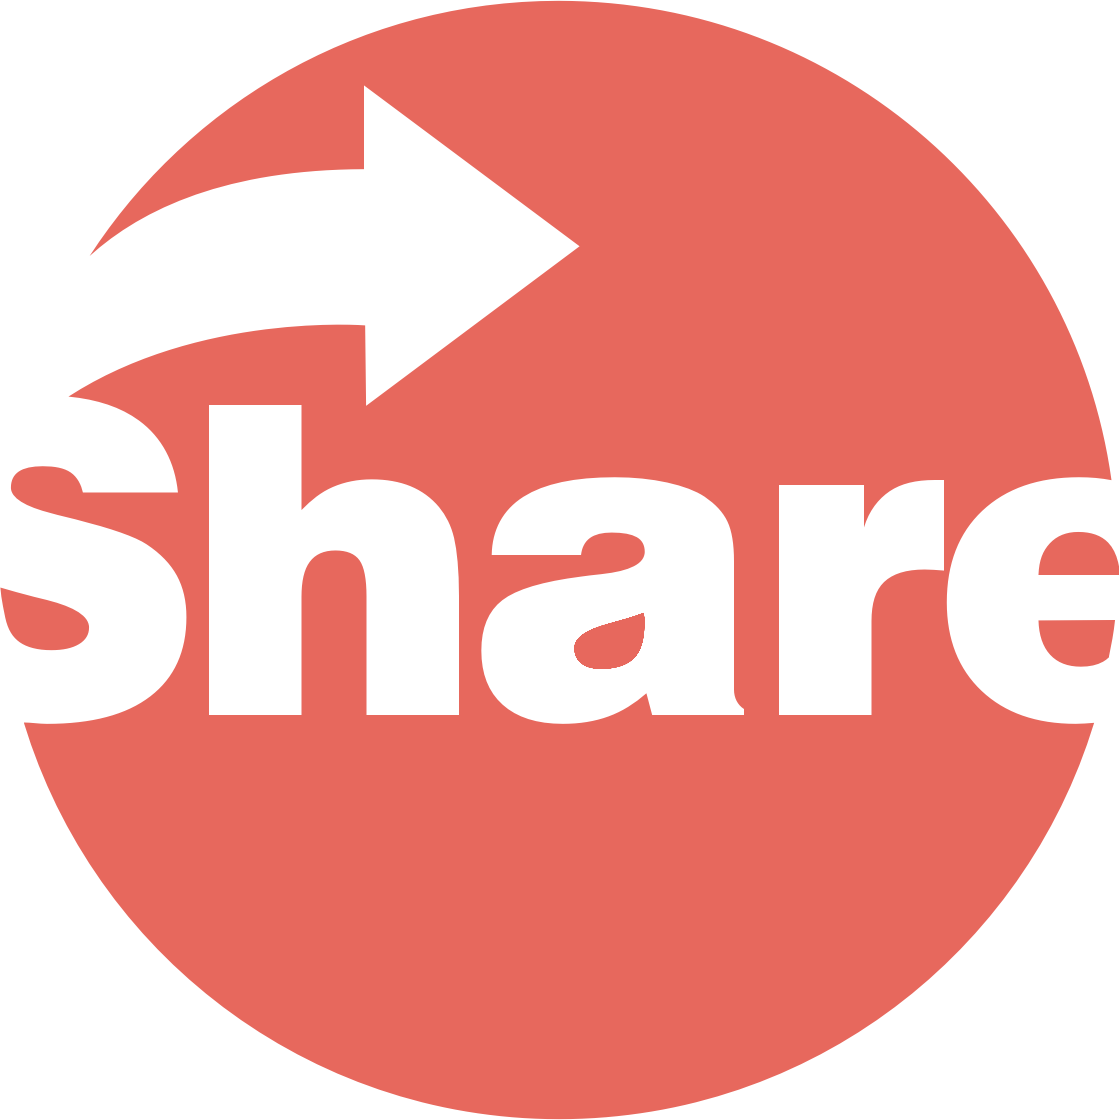 Share Button by GoodFreeArt